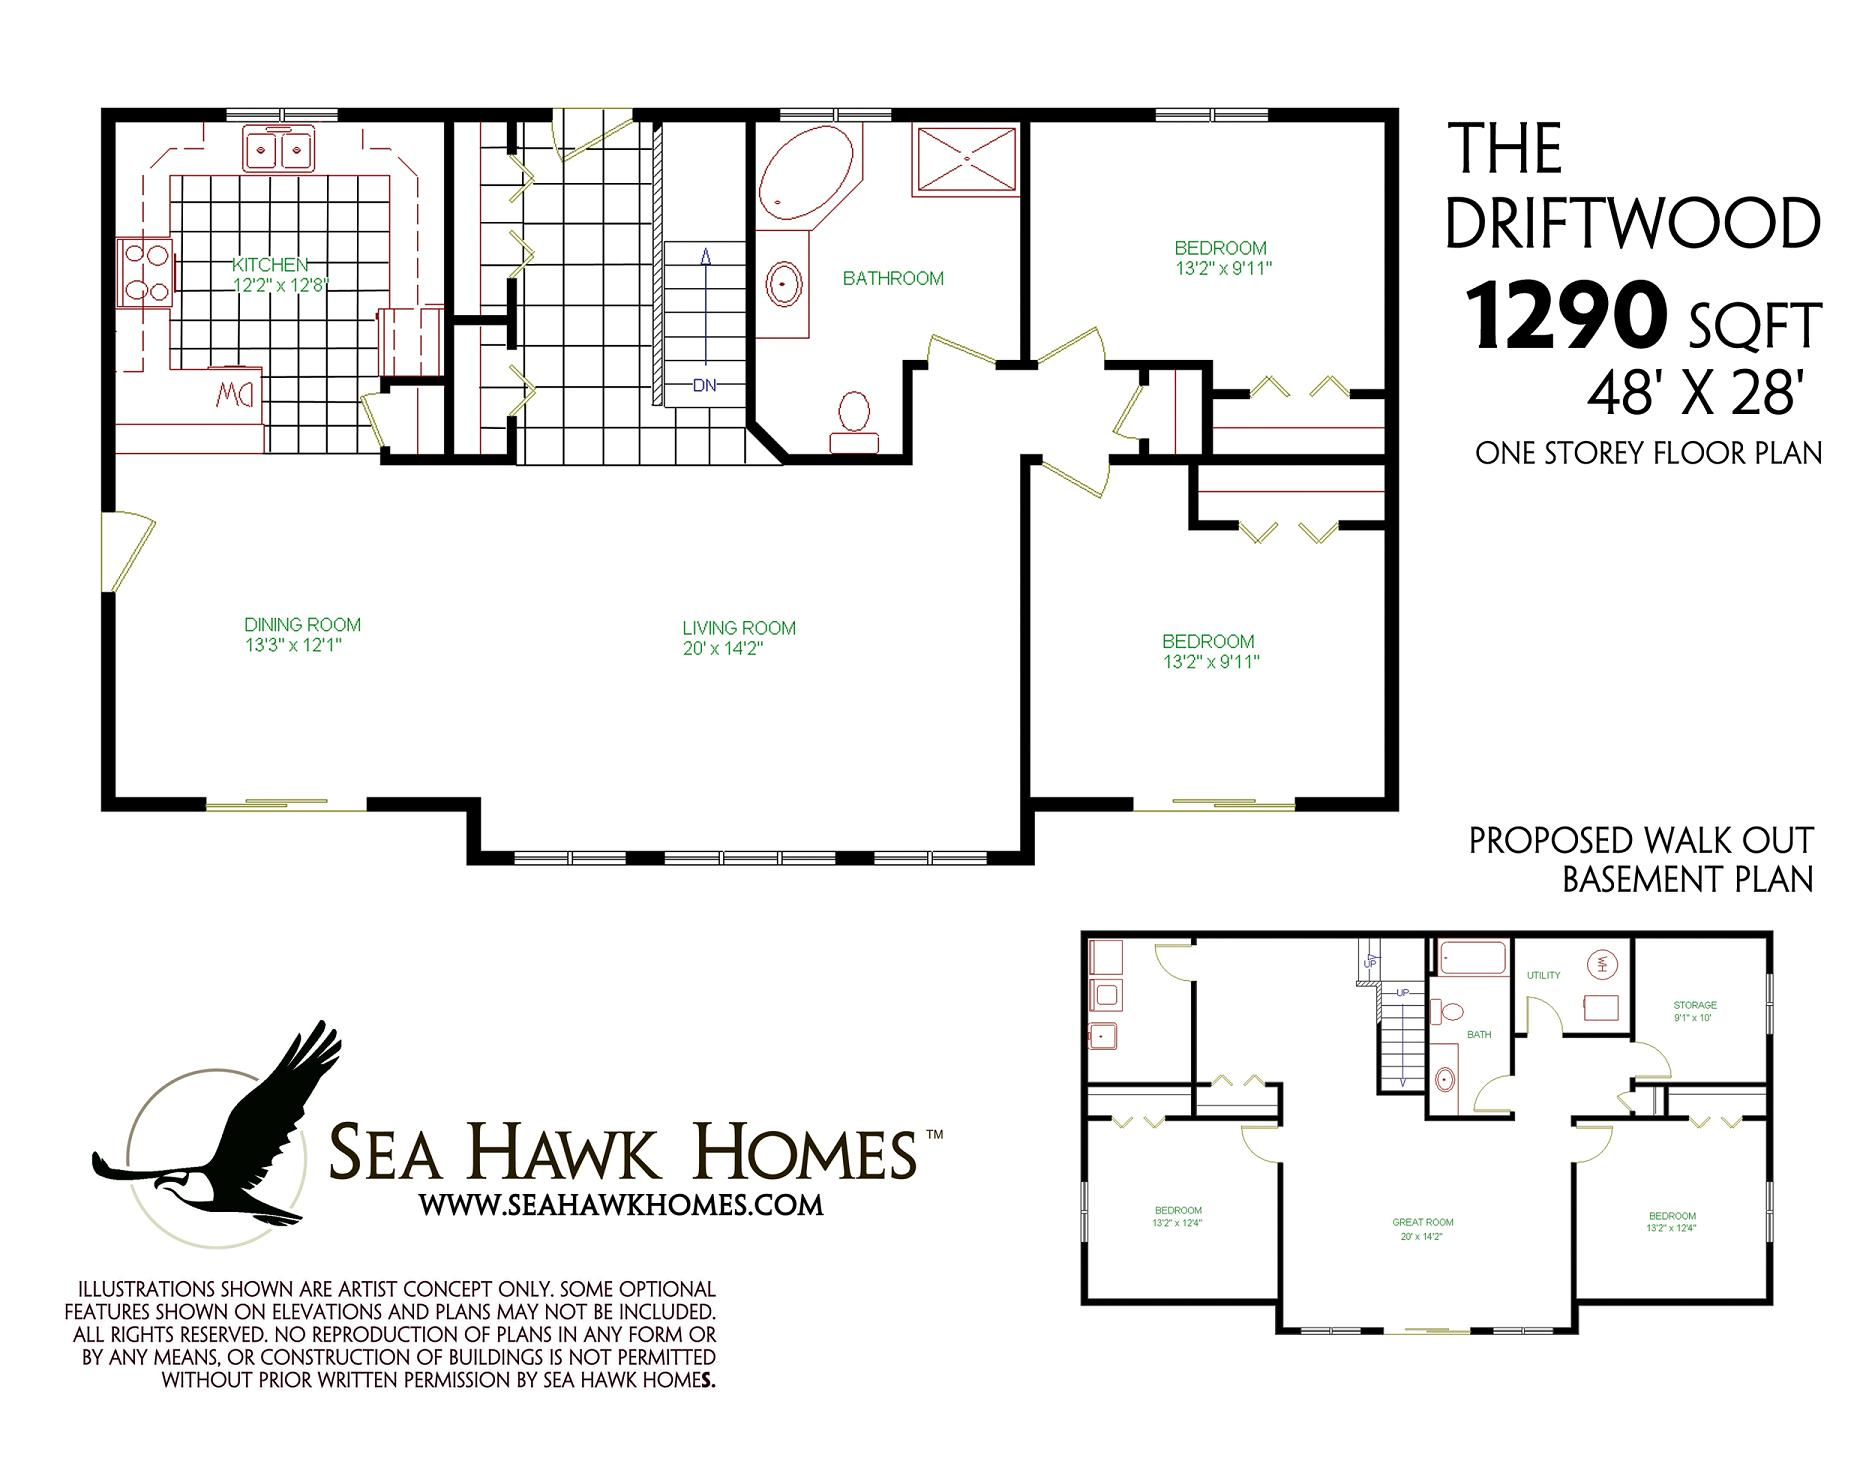 Ranch Floor Plans With Walkout Basement Driftwood Sea Hawk Homes